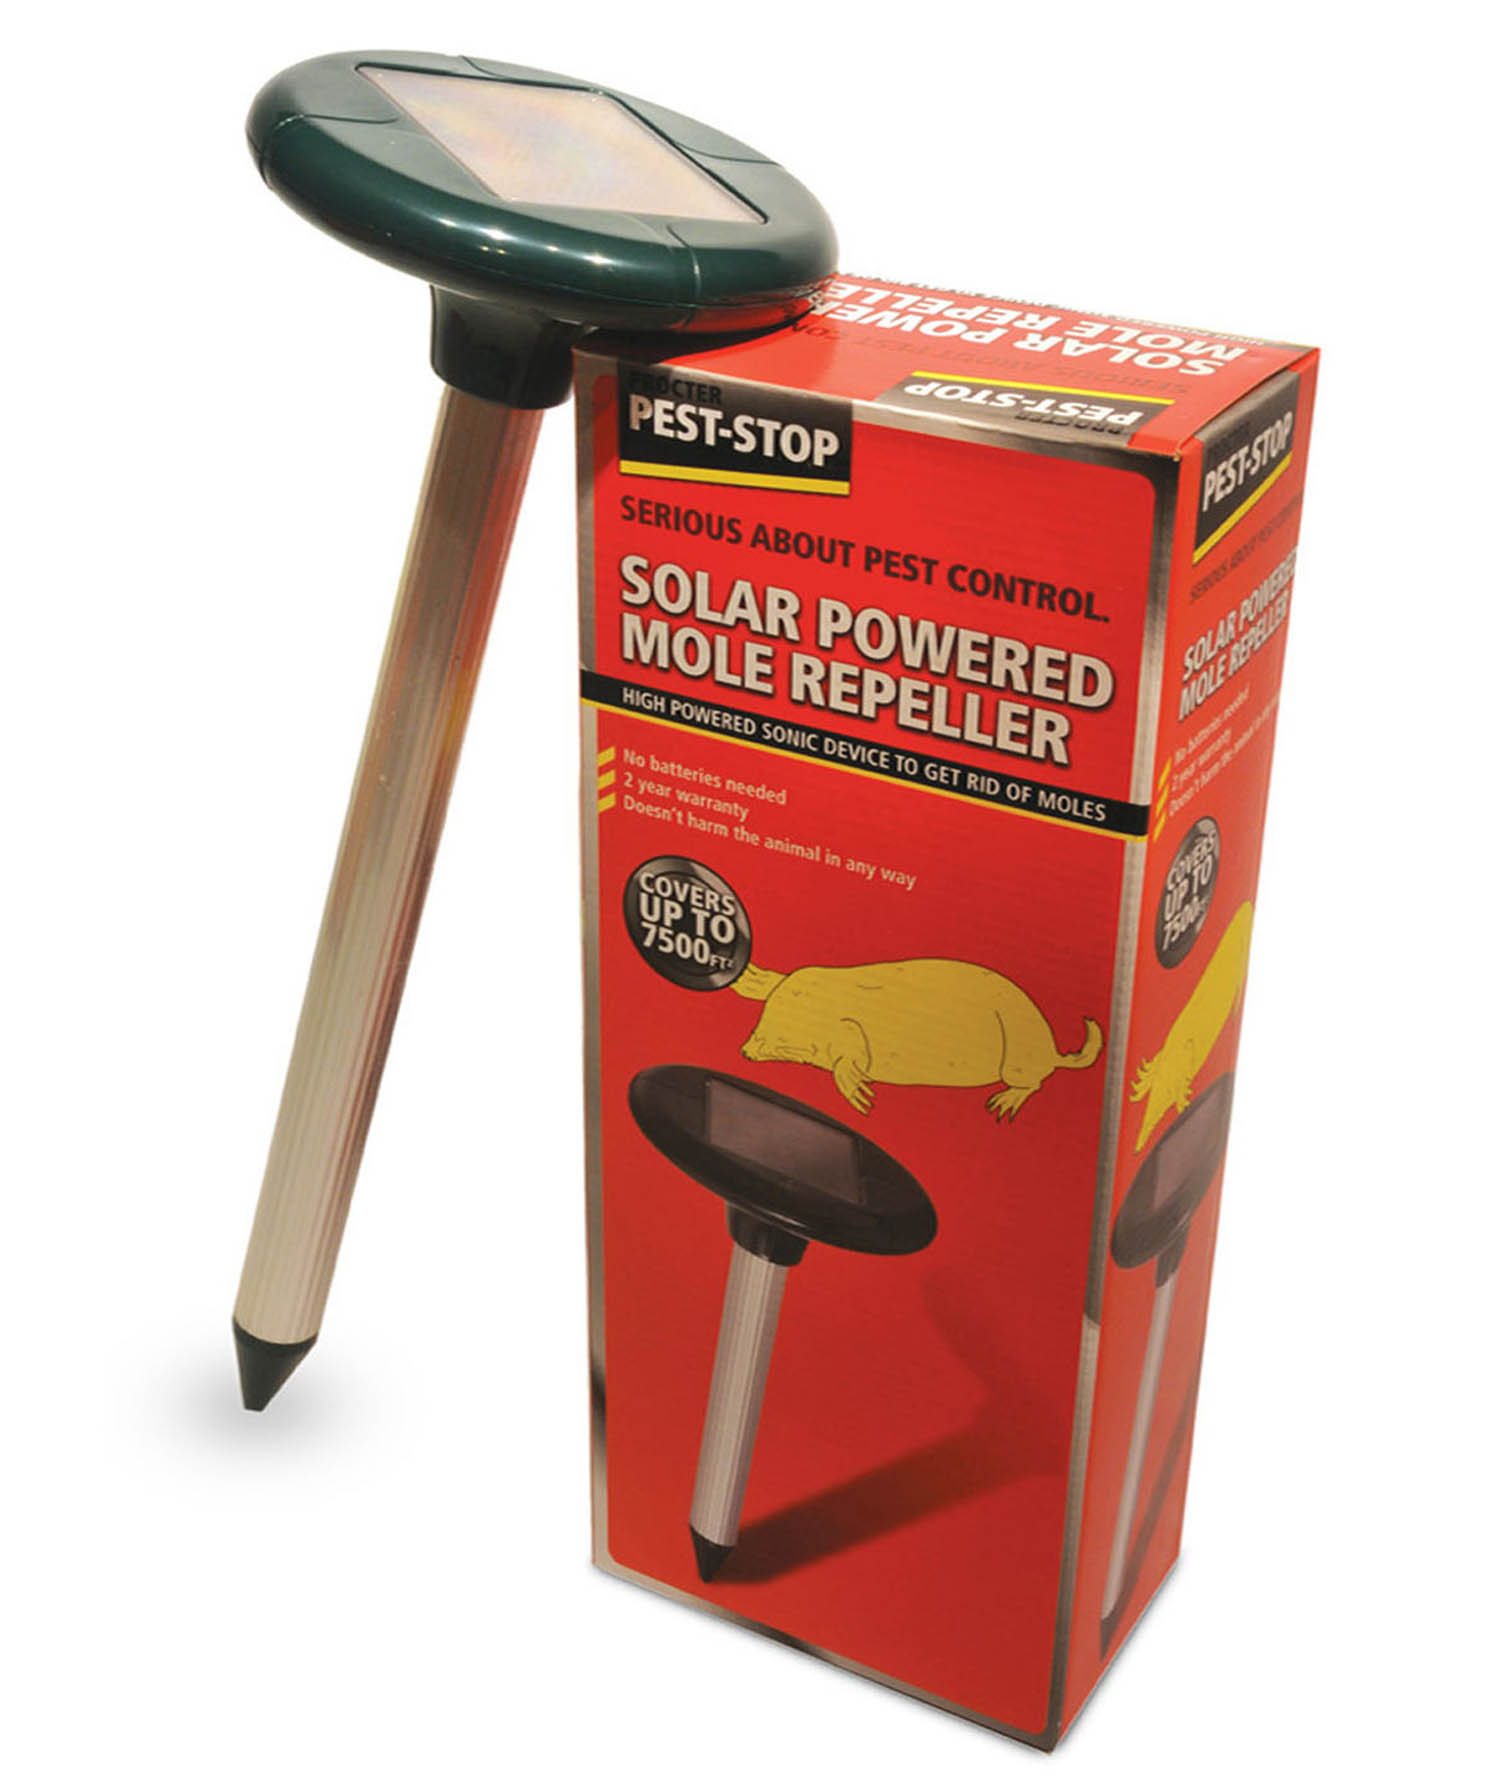 Pest Control In Boutte Mail: Mole Repeller Solar Powered